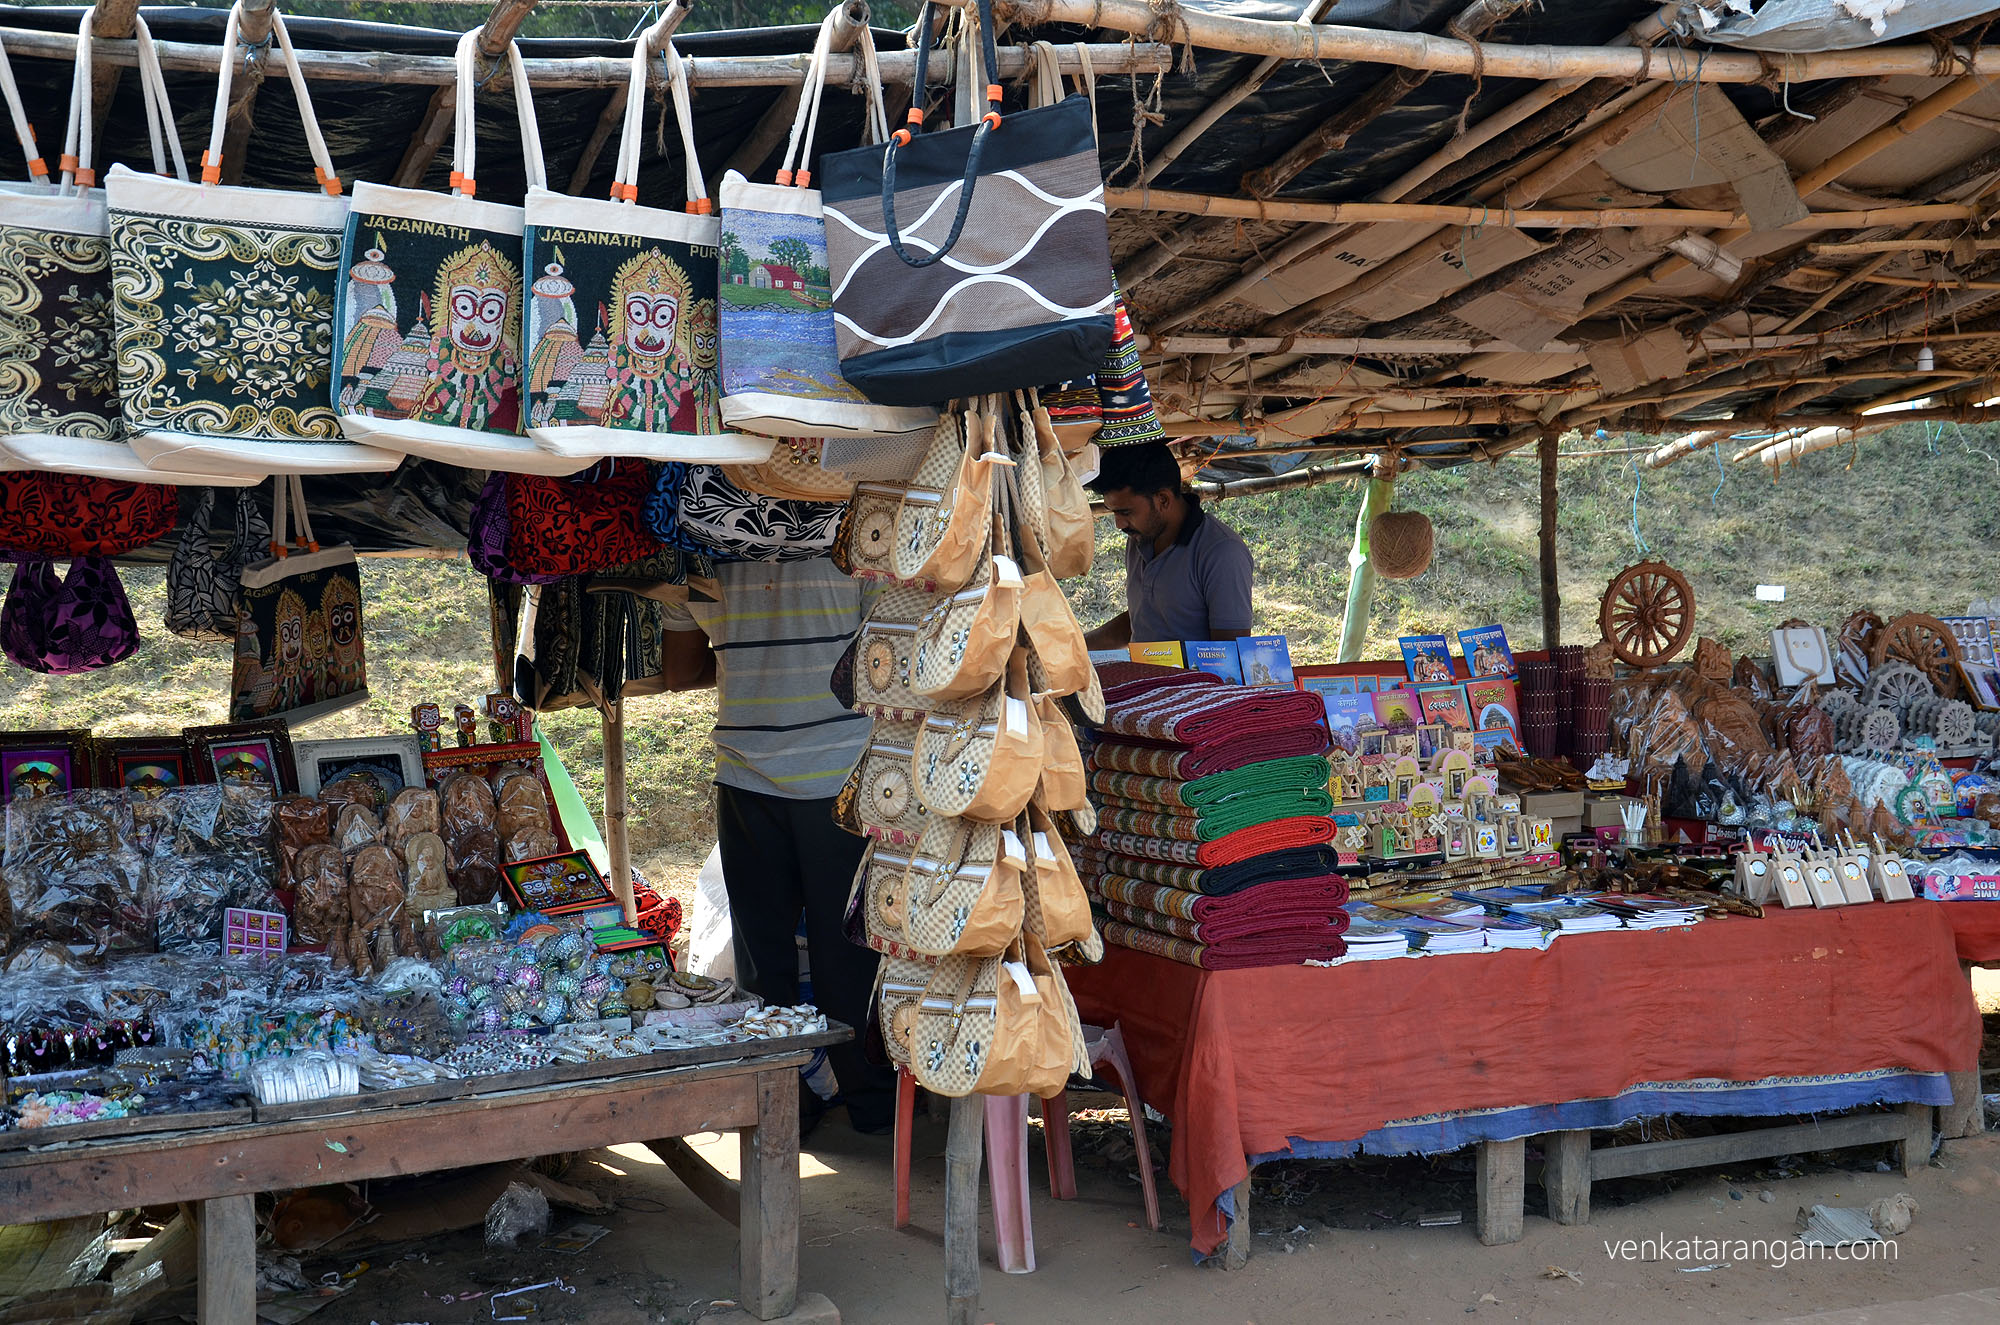 Shops on the way to Konark Sun temple